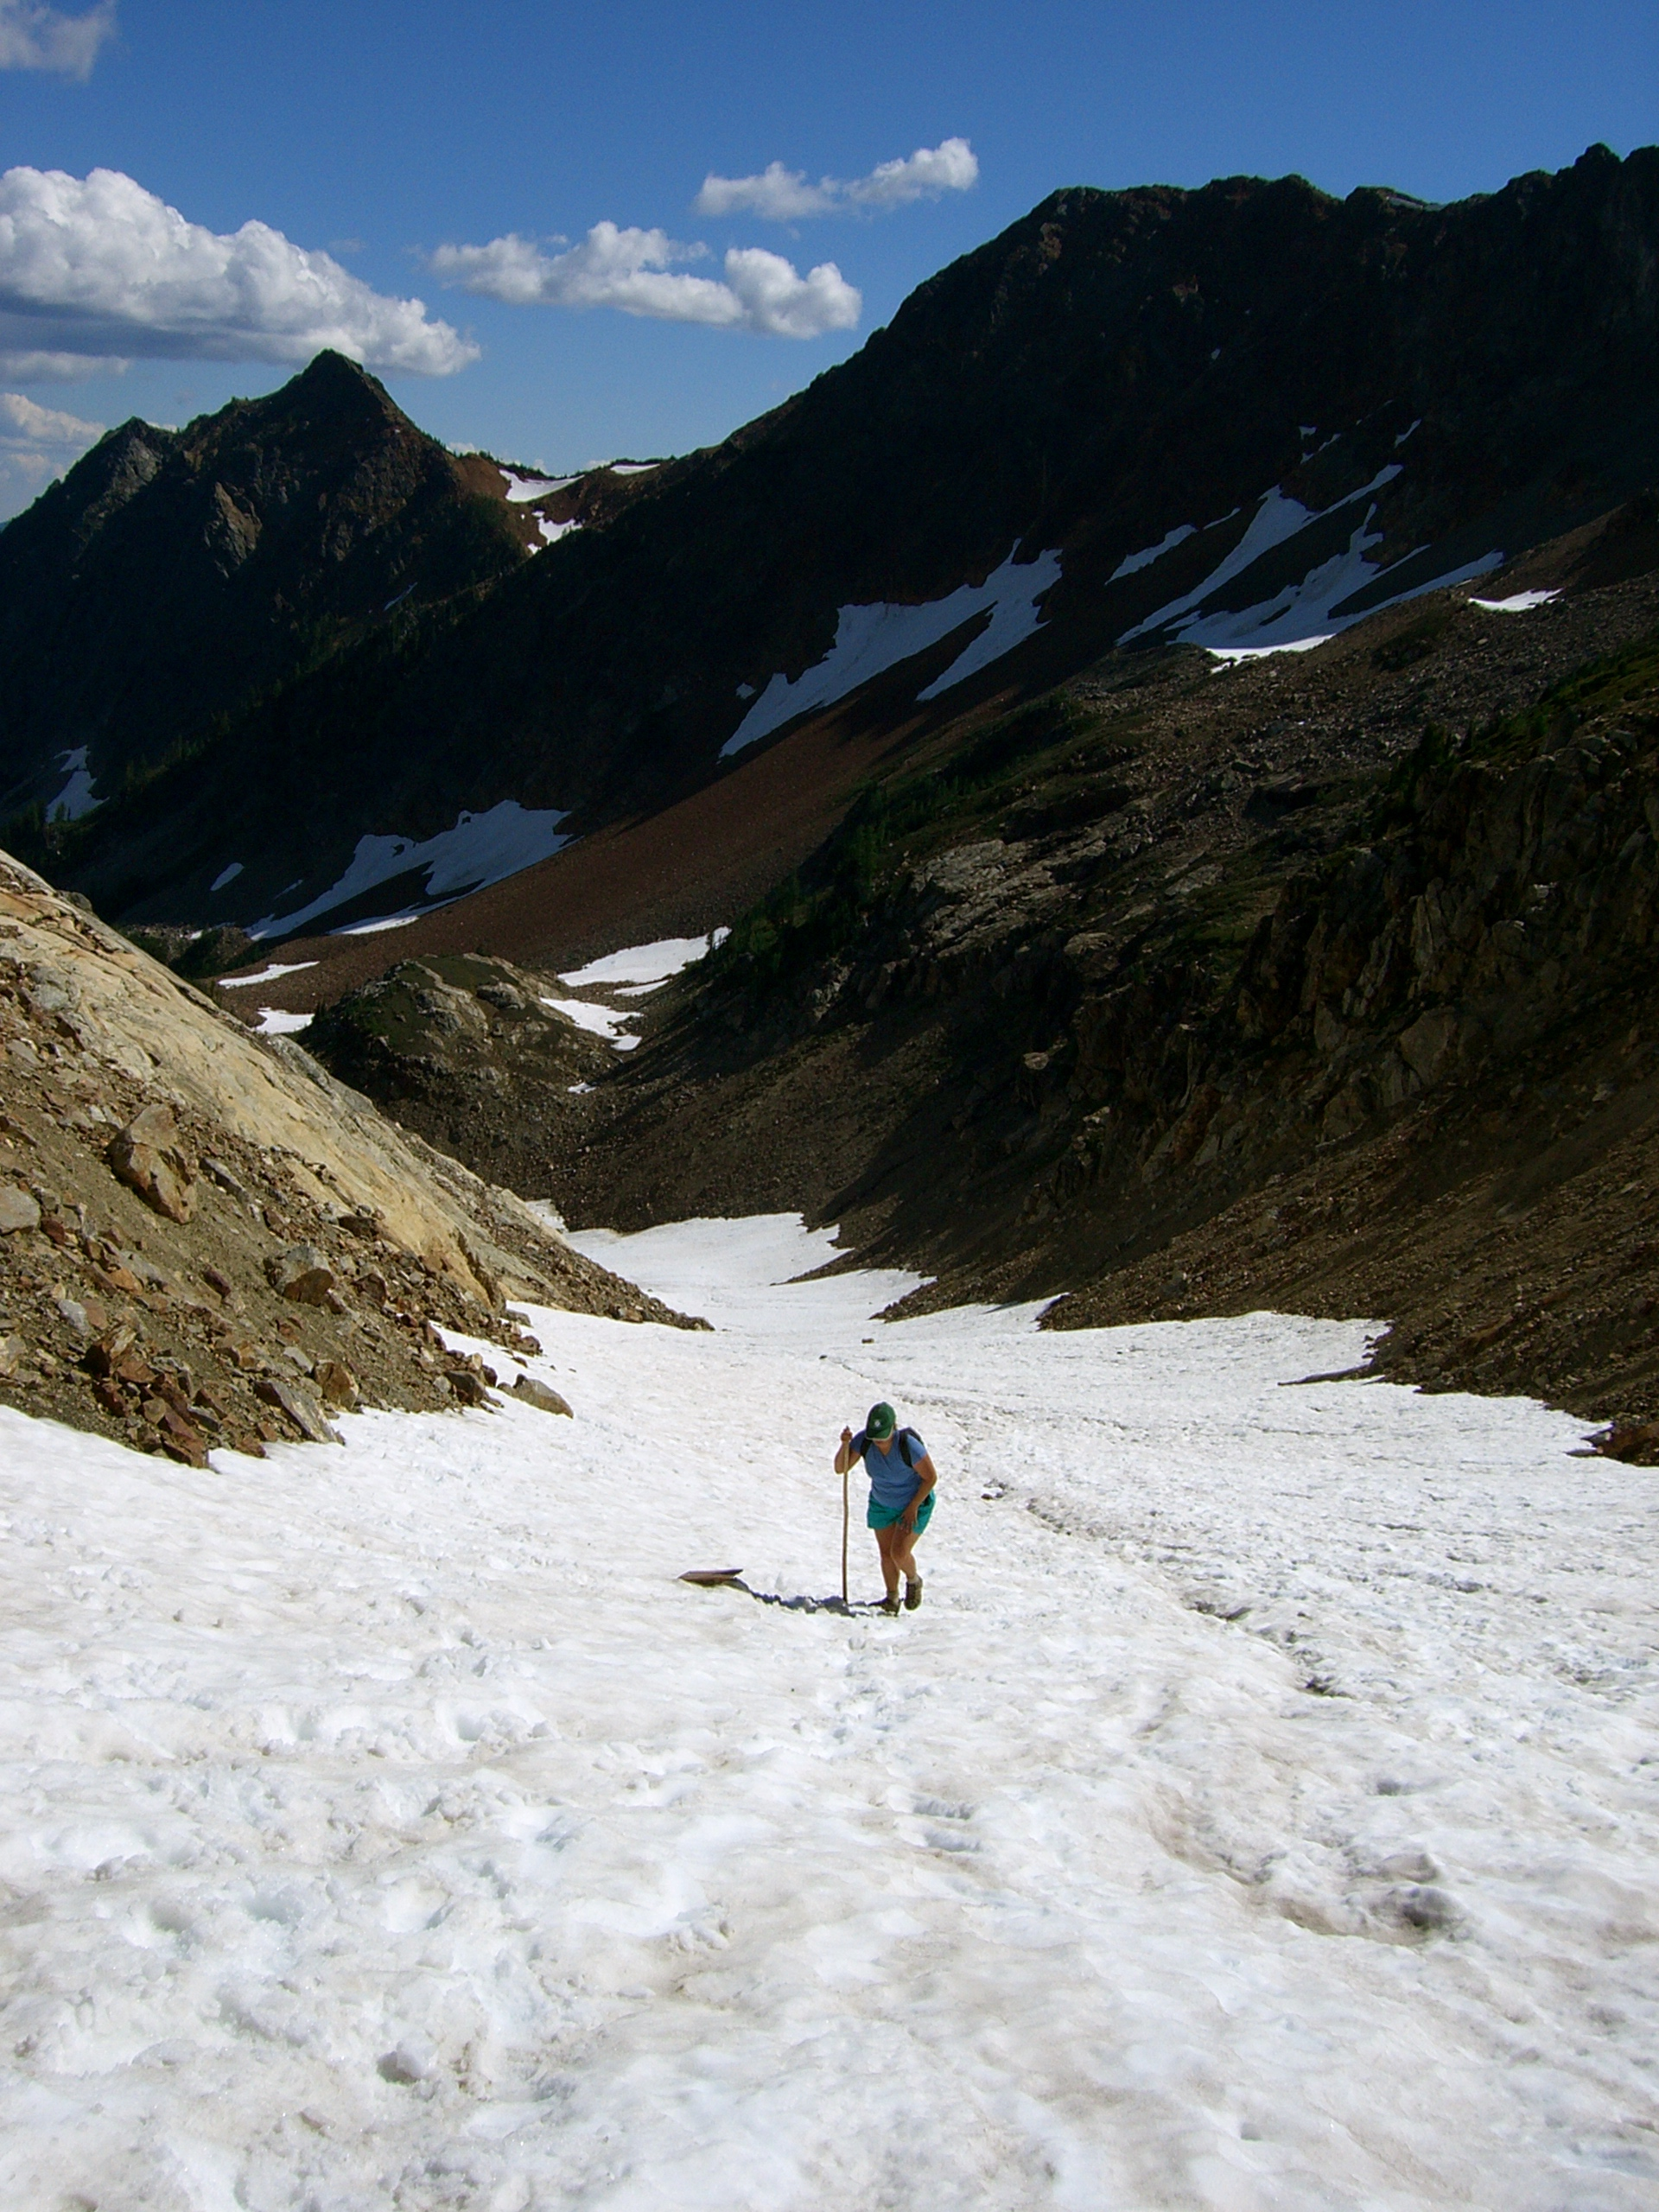 Kristina hiking up what's left of Spider Glacier towards the Gap. Saturday 12 August 2006. Foto by William Dudley Bass.